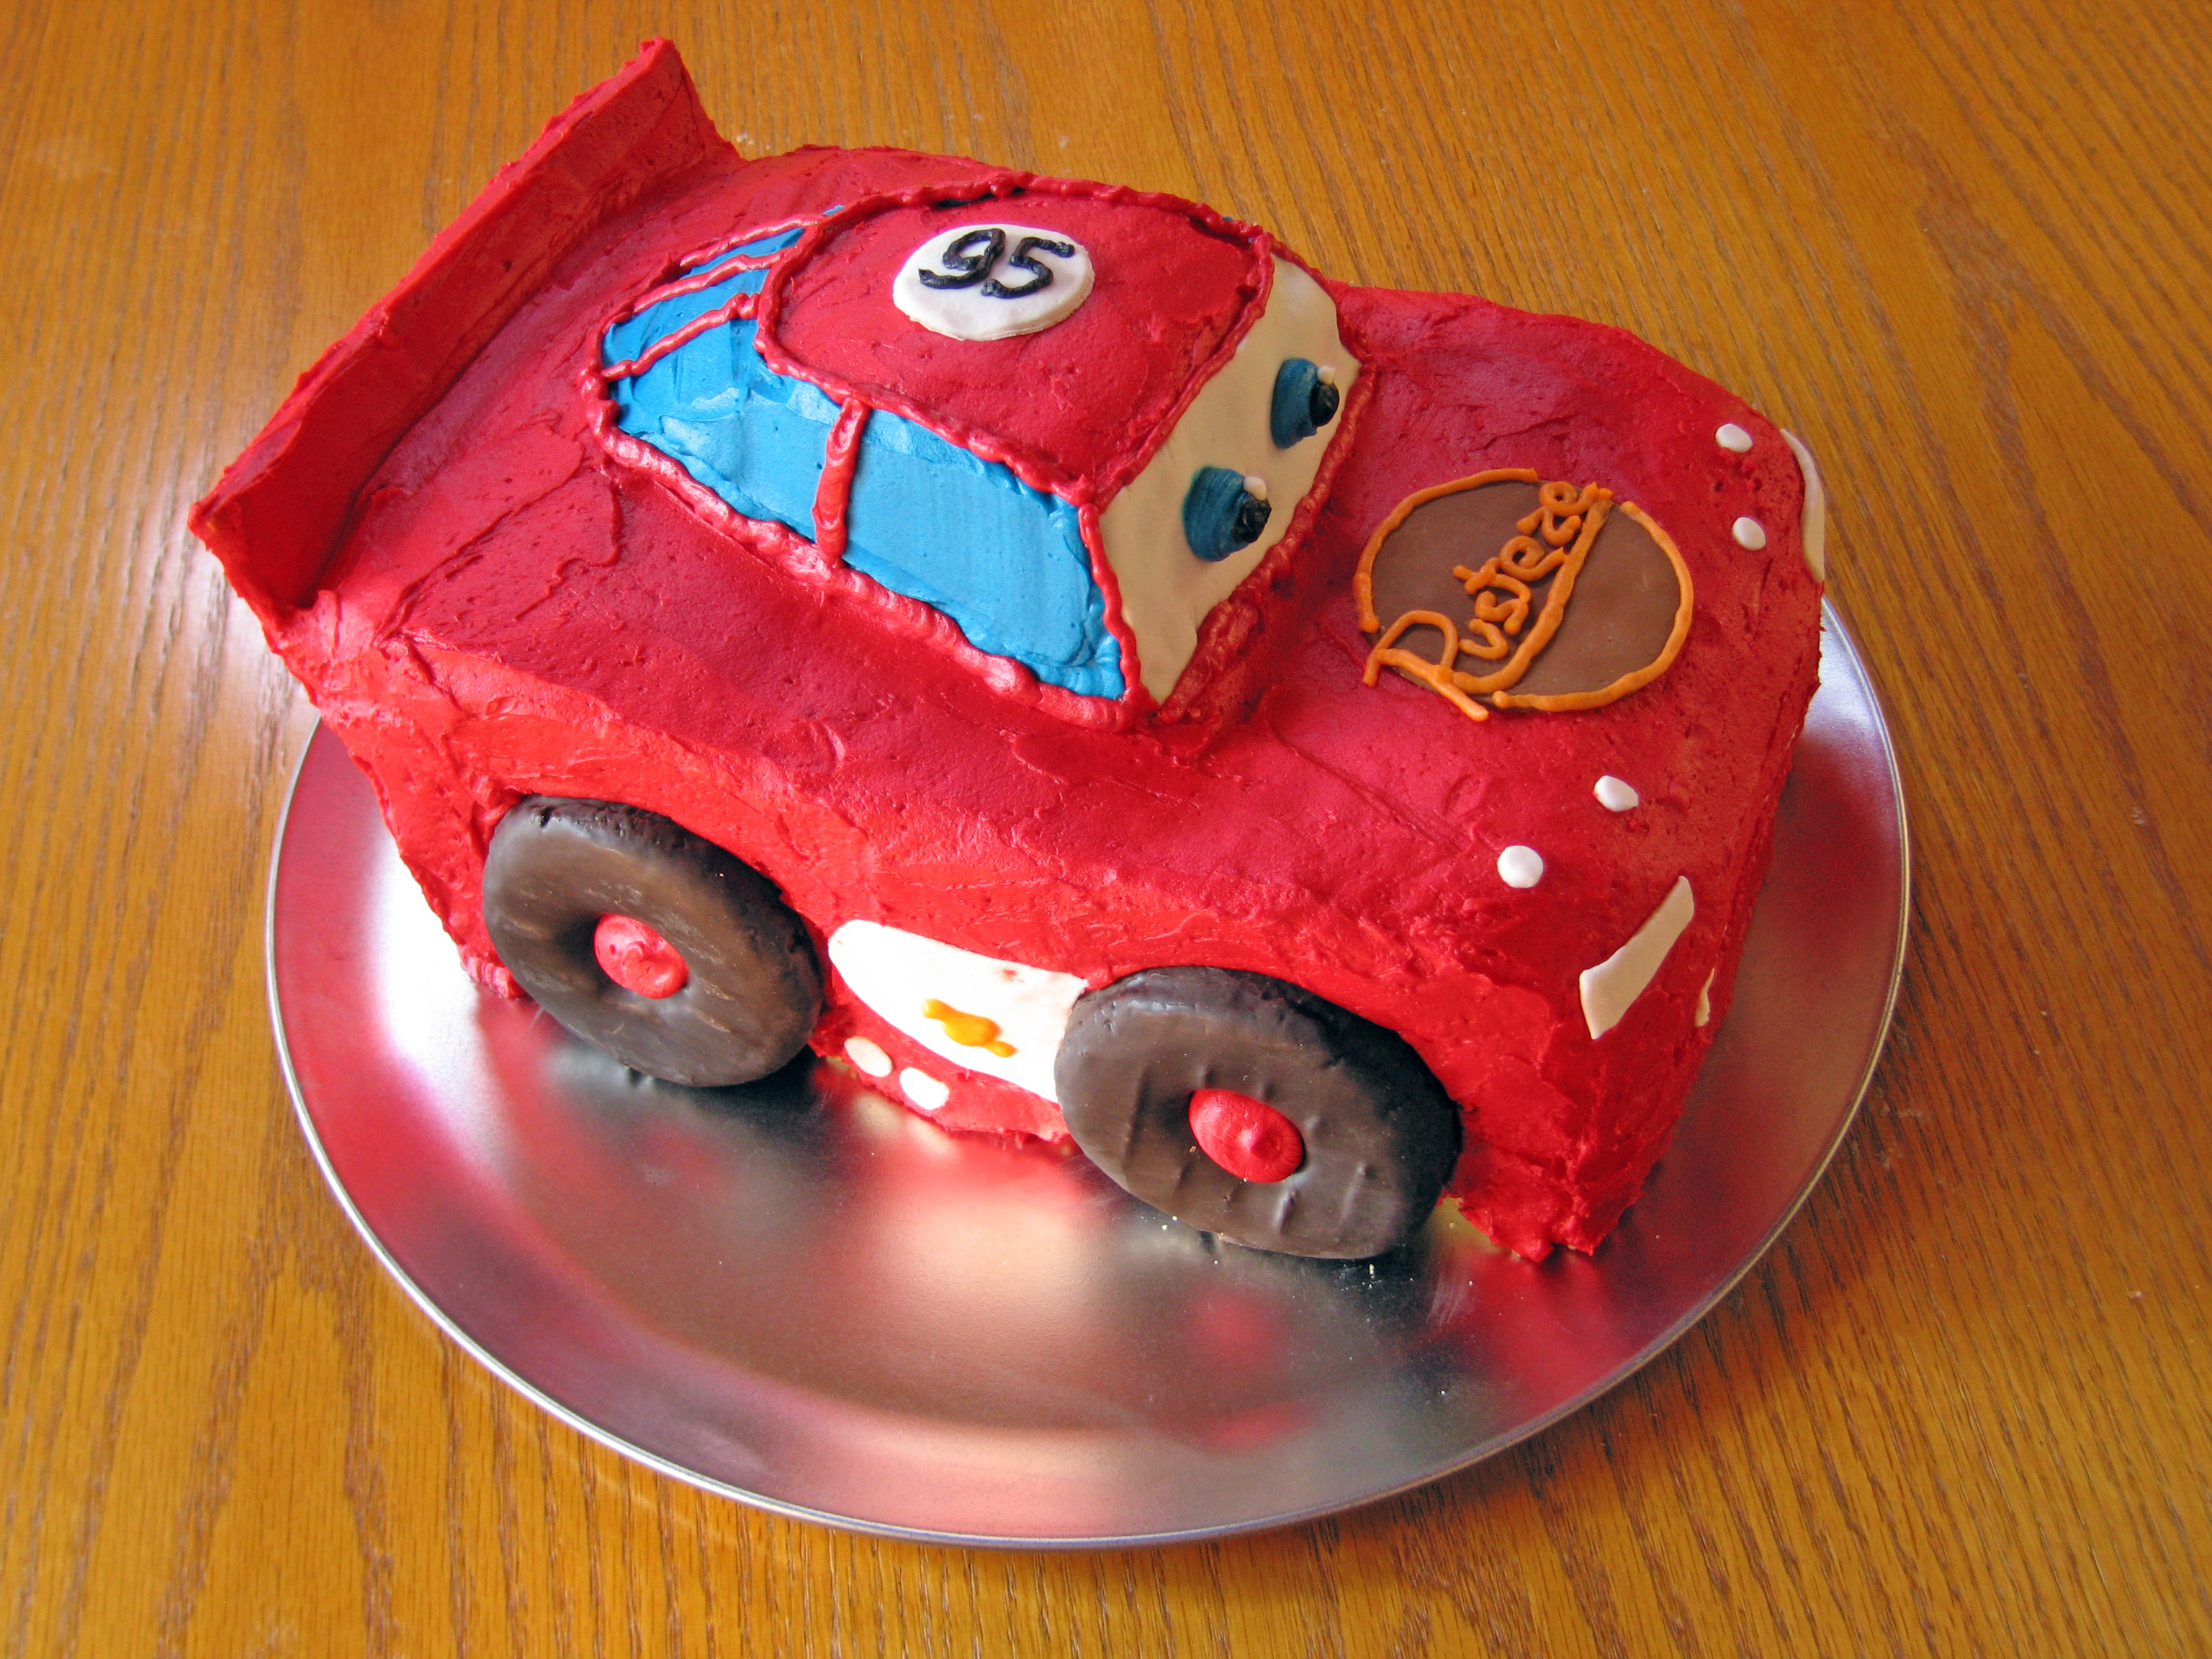 Remarkable Lightning Mcqueen Birthday Cake Andrea Meyers Personalised Birthday Cards Paralily Jamesorg